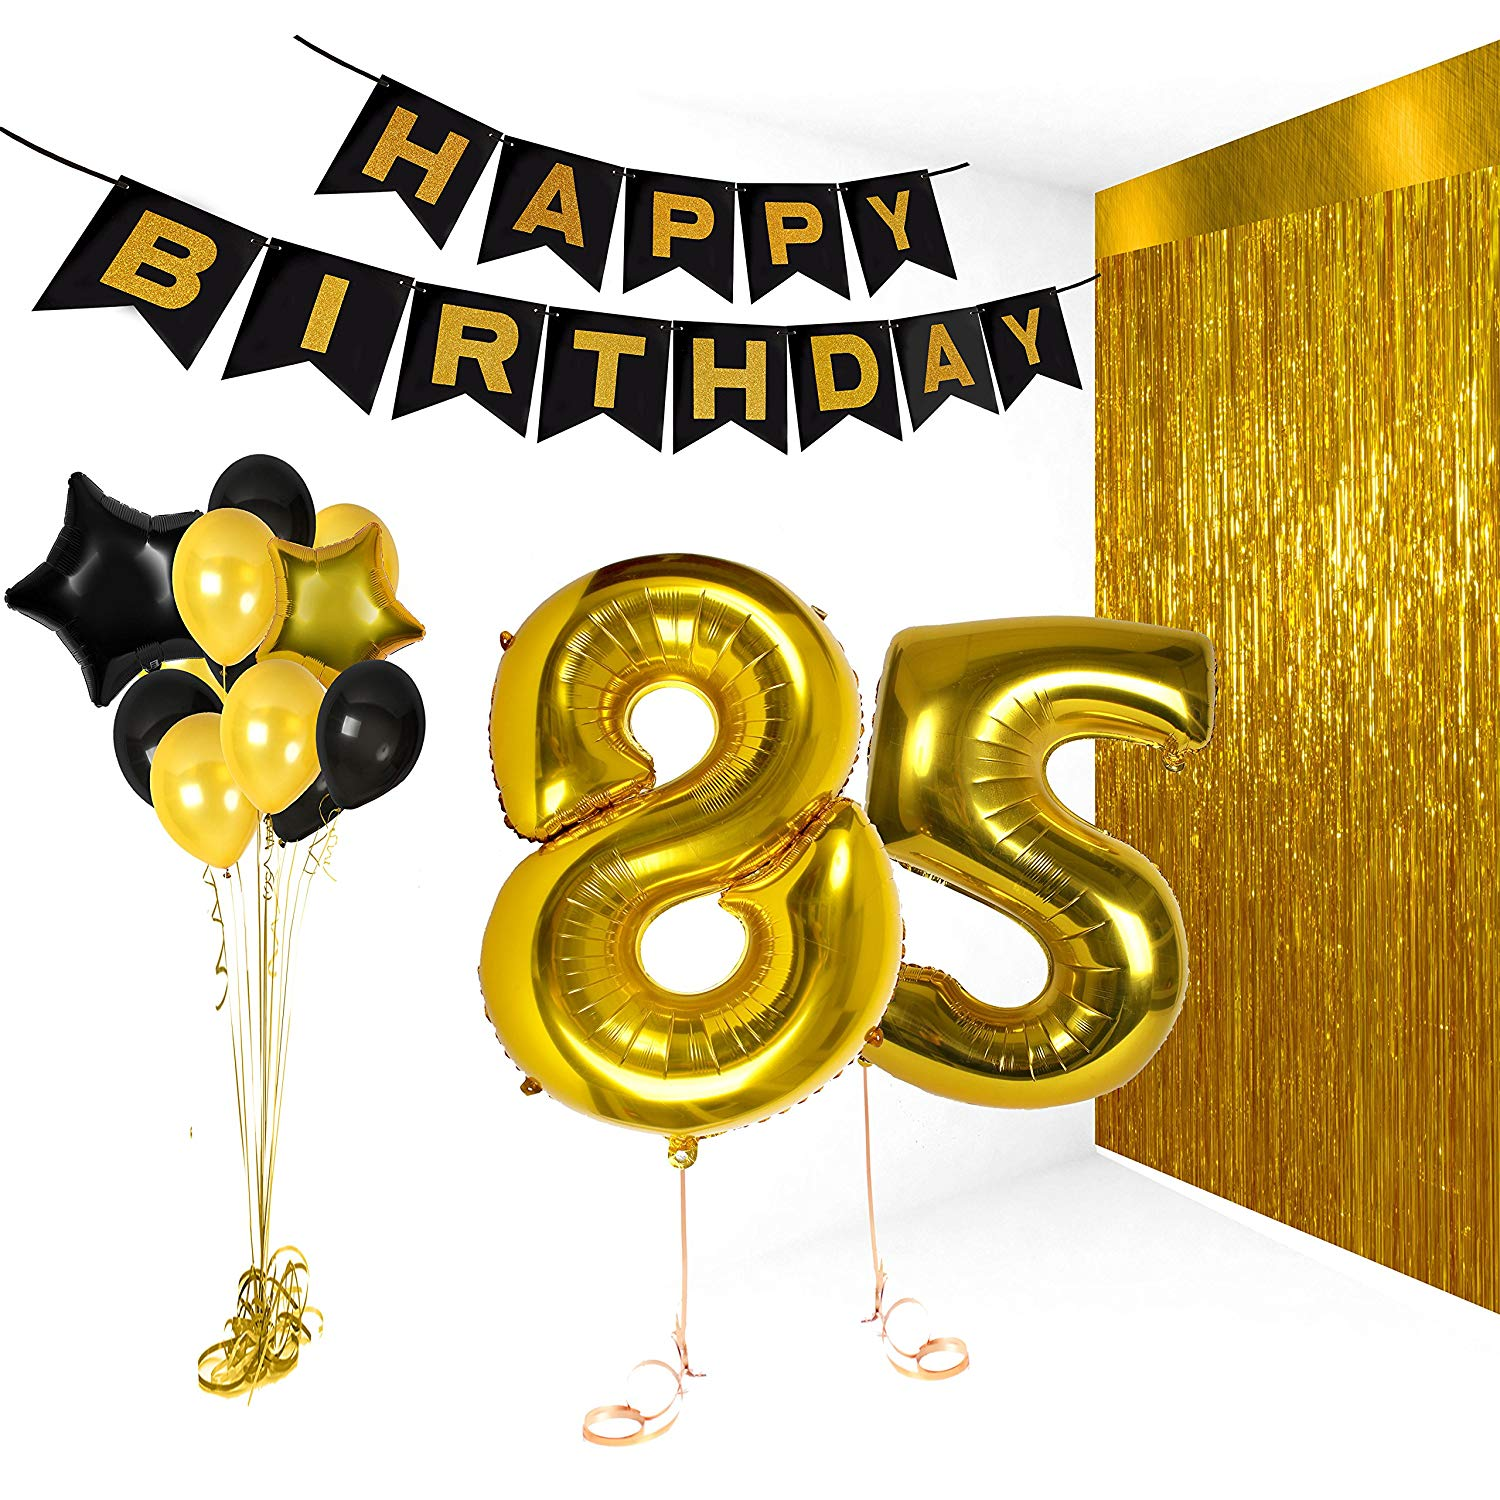 Get Quotations Treasures Gifted Happy 85th Birthday Party Decorations Supplies Kit Gold Metallic Letter Decor Balloon Banner For